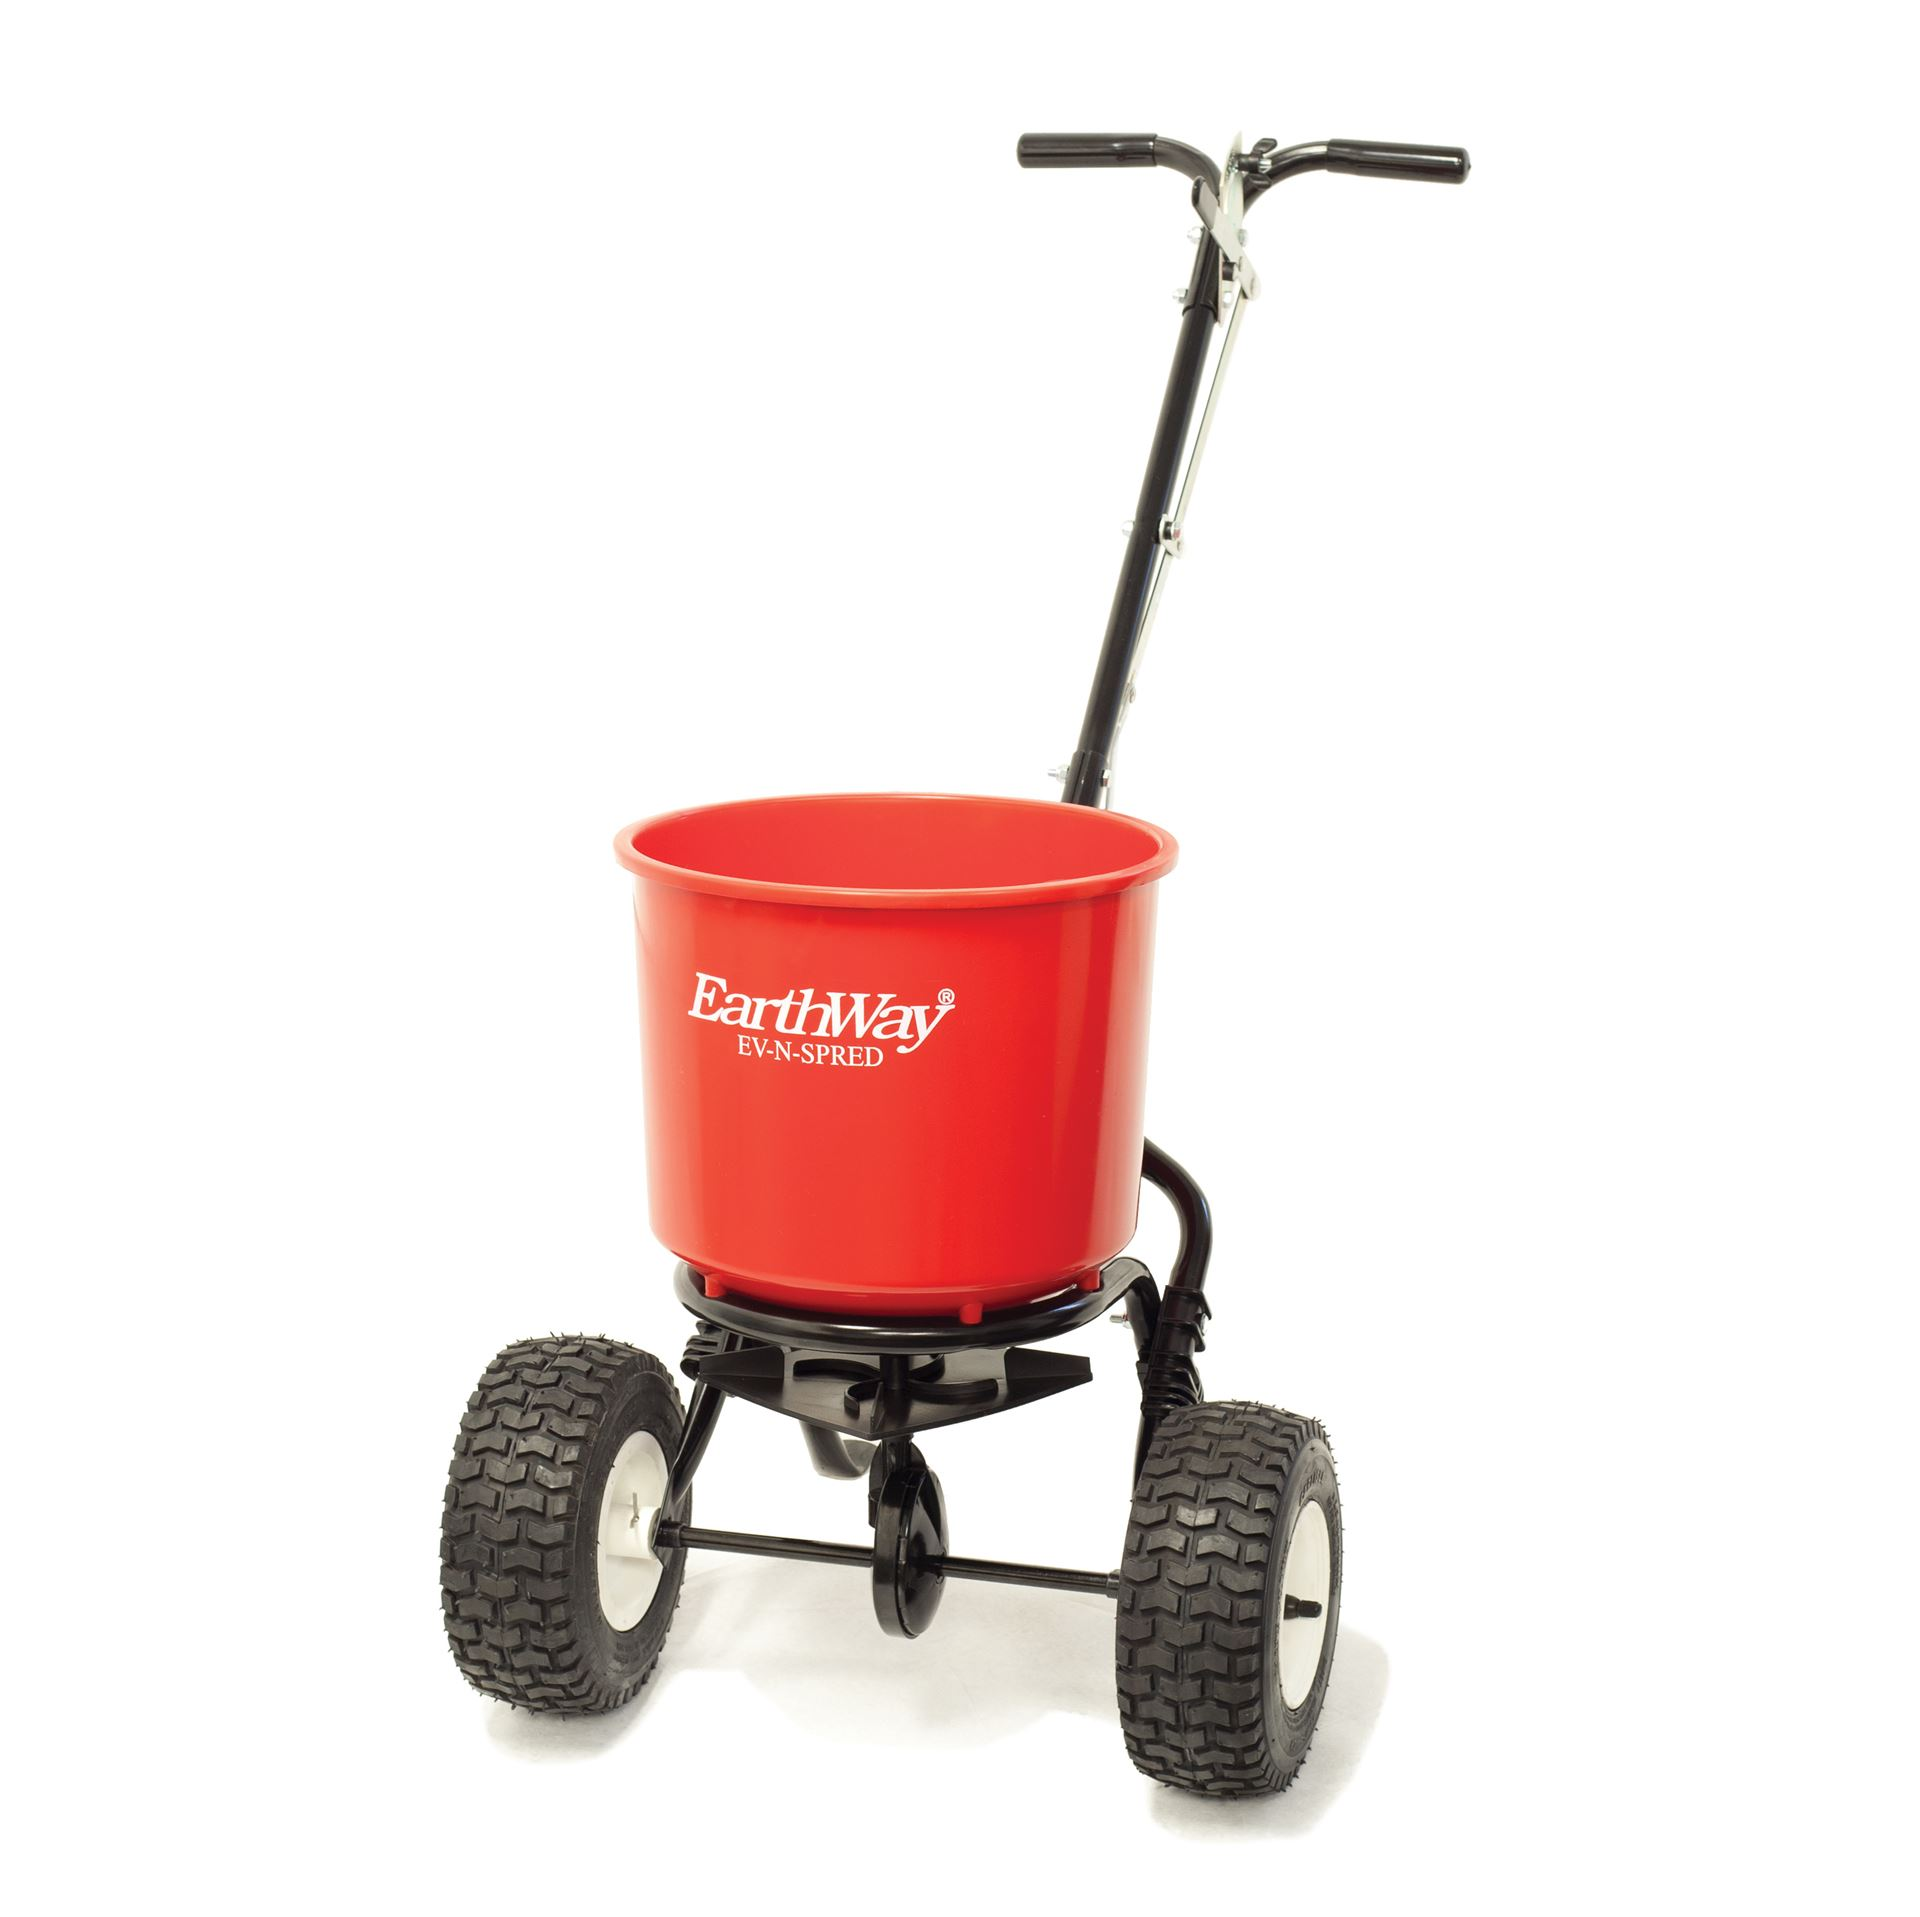 MEDIUM-DUTY ESTATE BROADCAST SPREADER